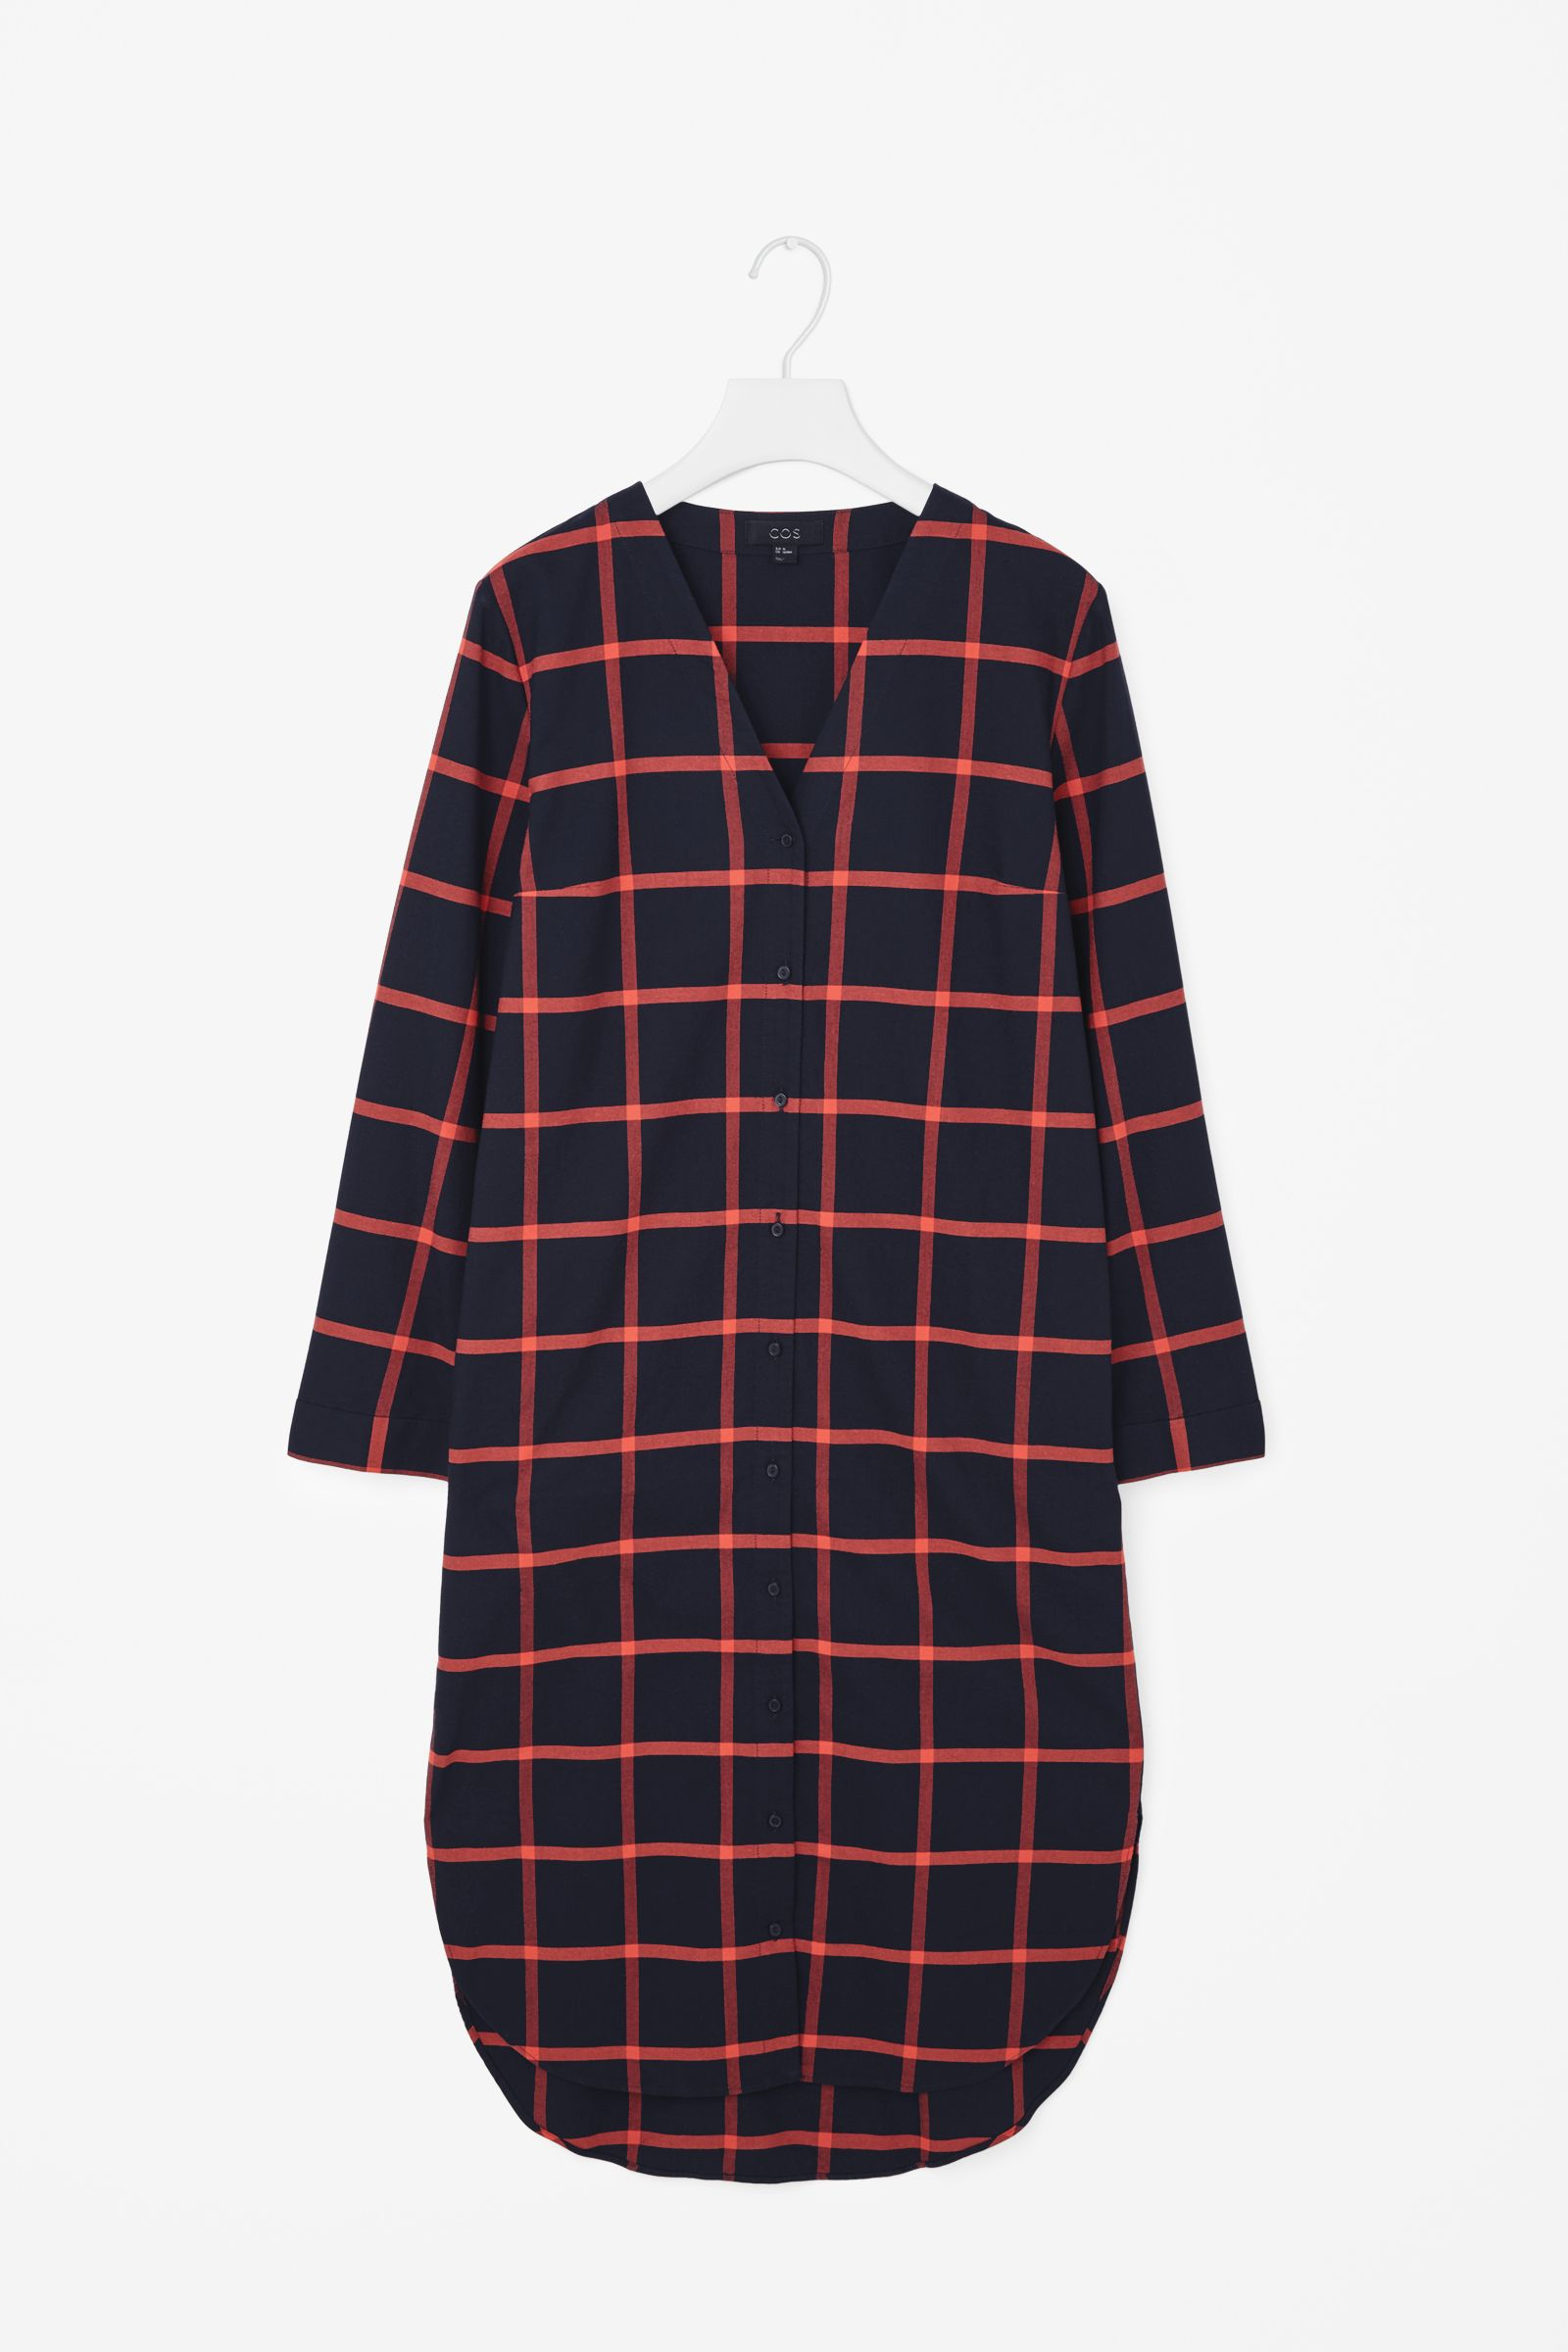 Cos v neck checked shirt dress in blue navy red check for Navy blue checkered dress shirt